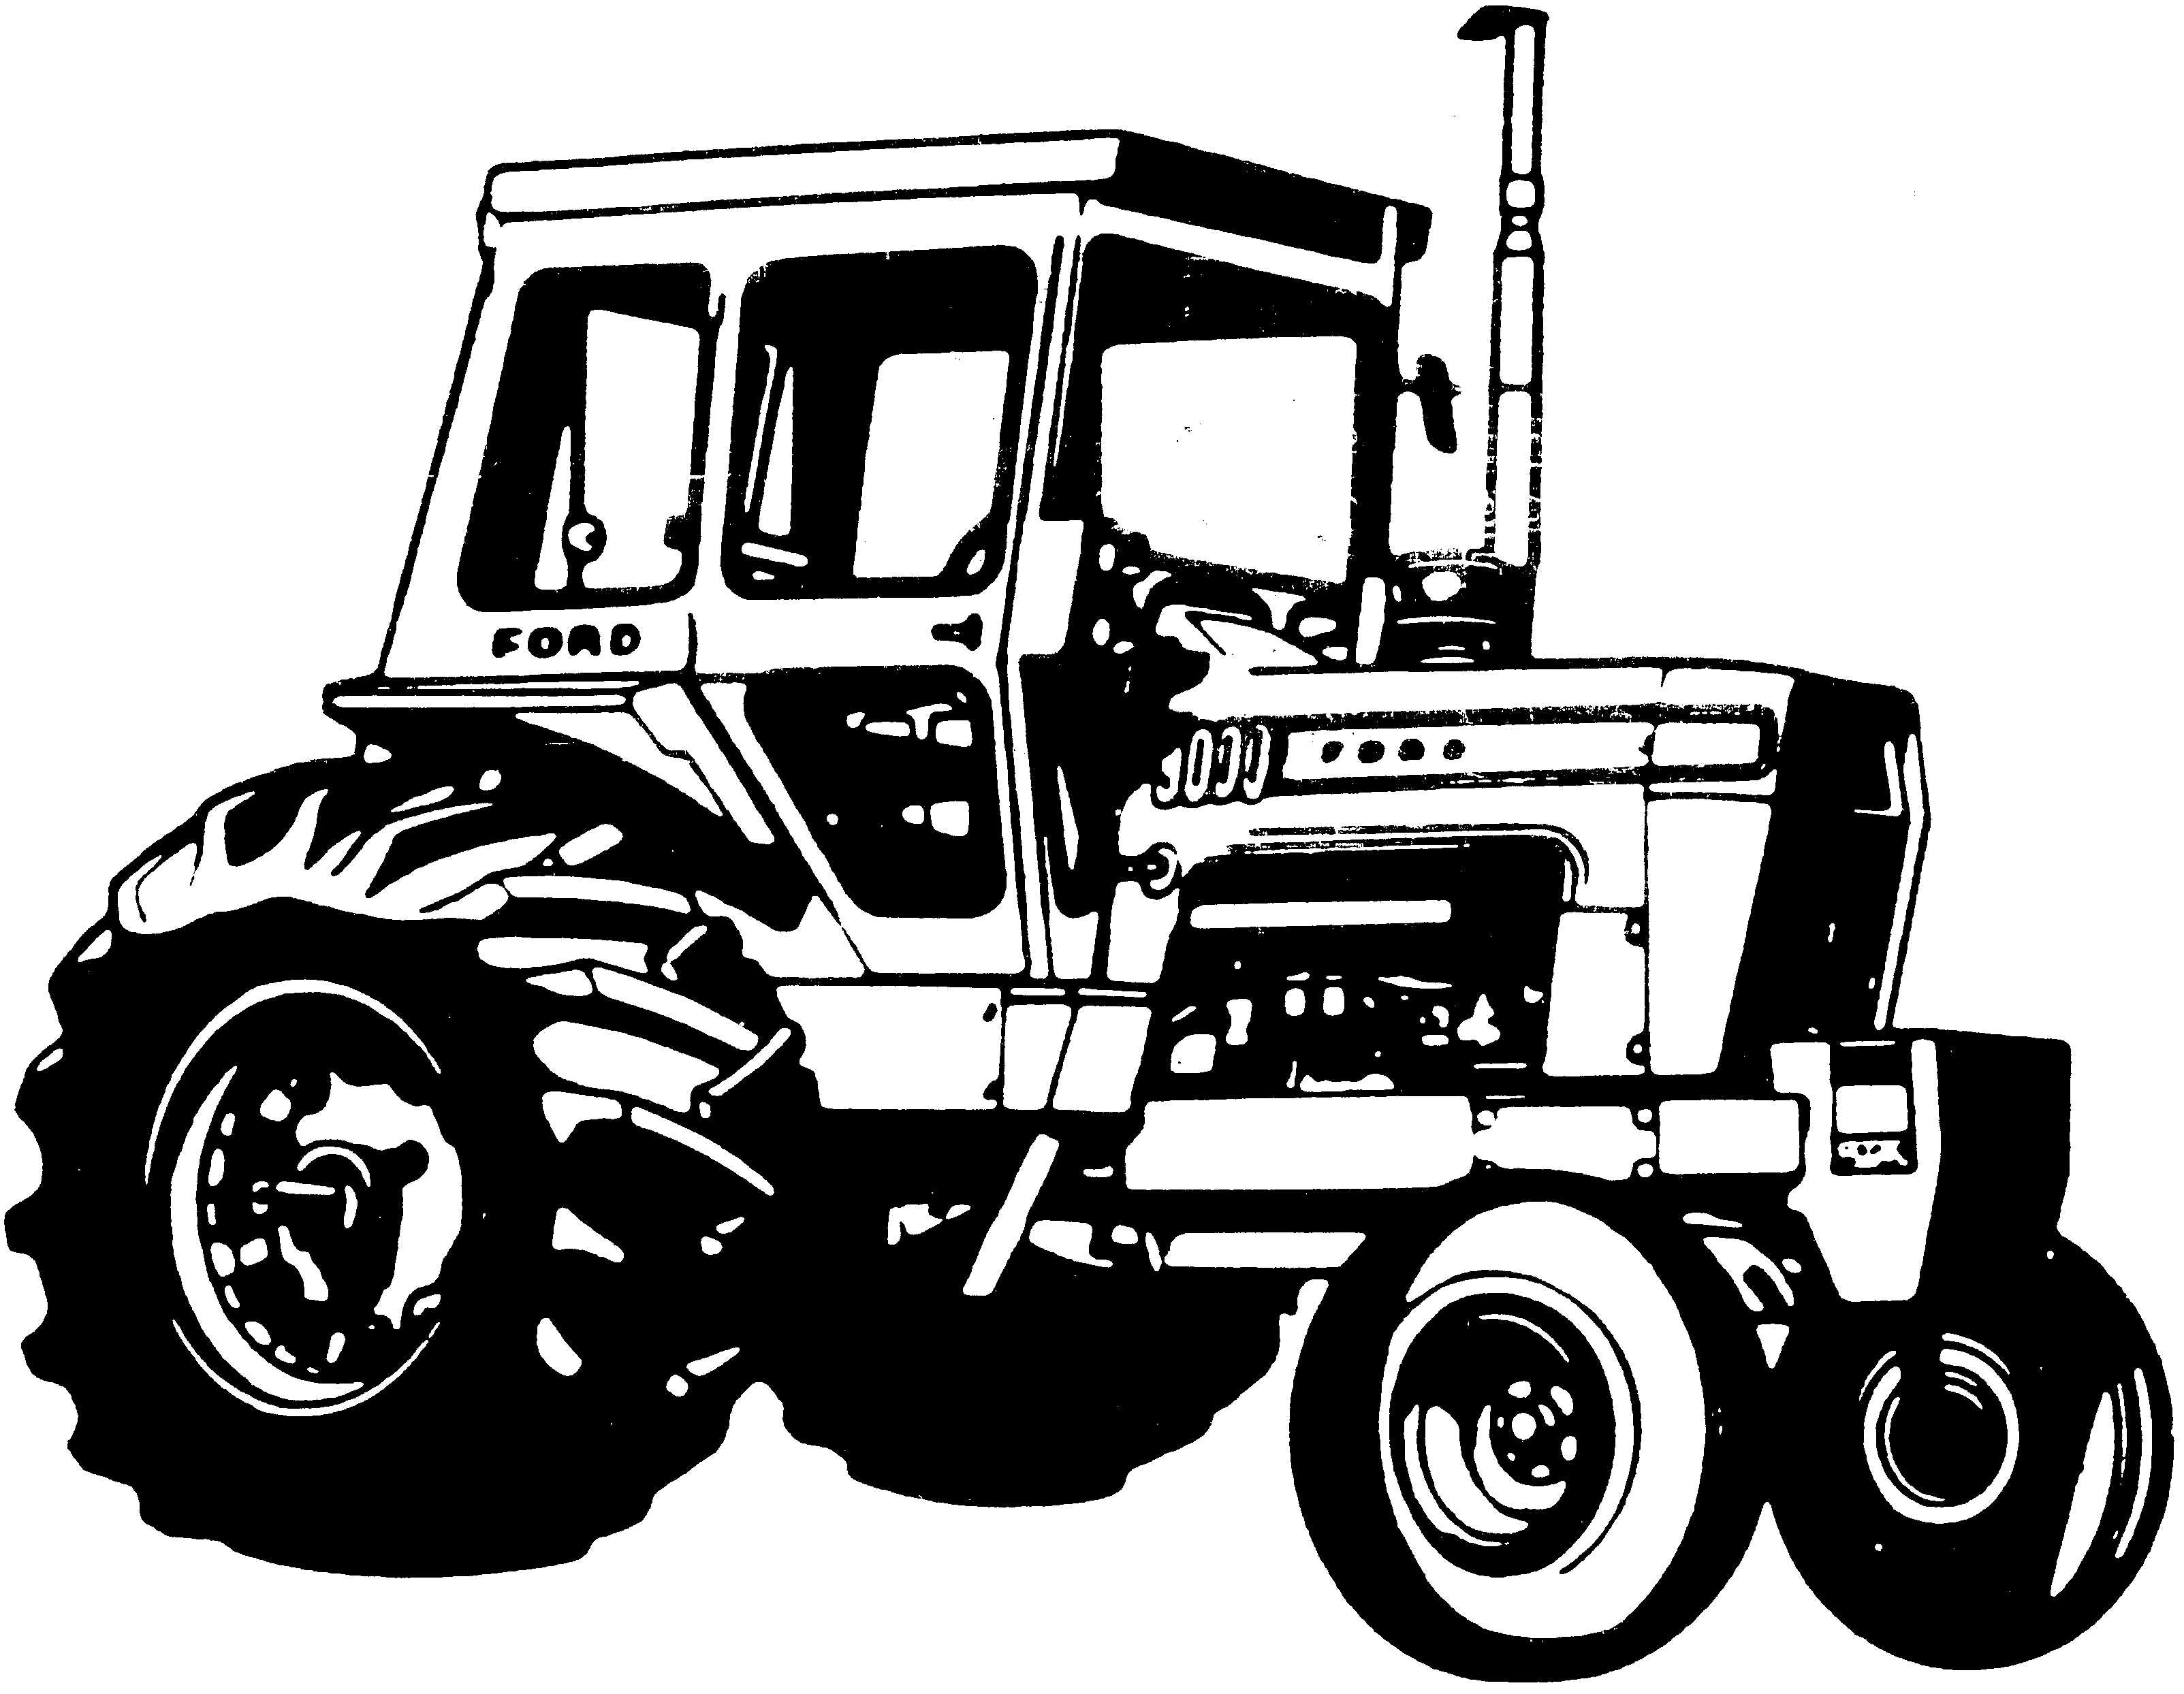 8600 ford tractor manual 1941 Zenith Radio Schematic array manual u2022 pagelarge rh pagelarge